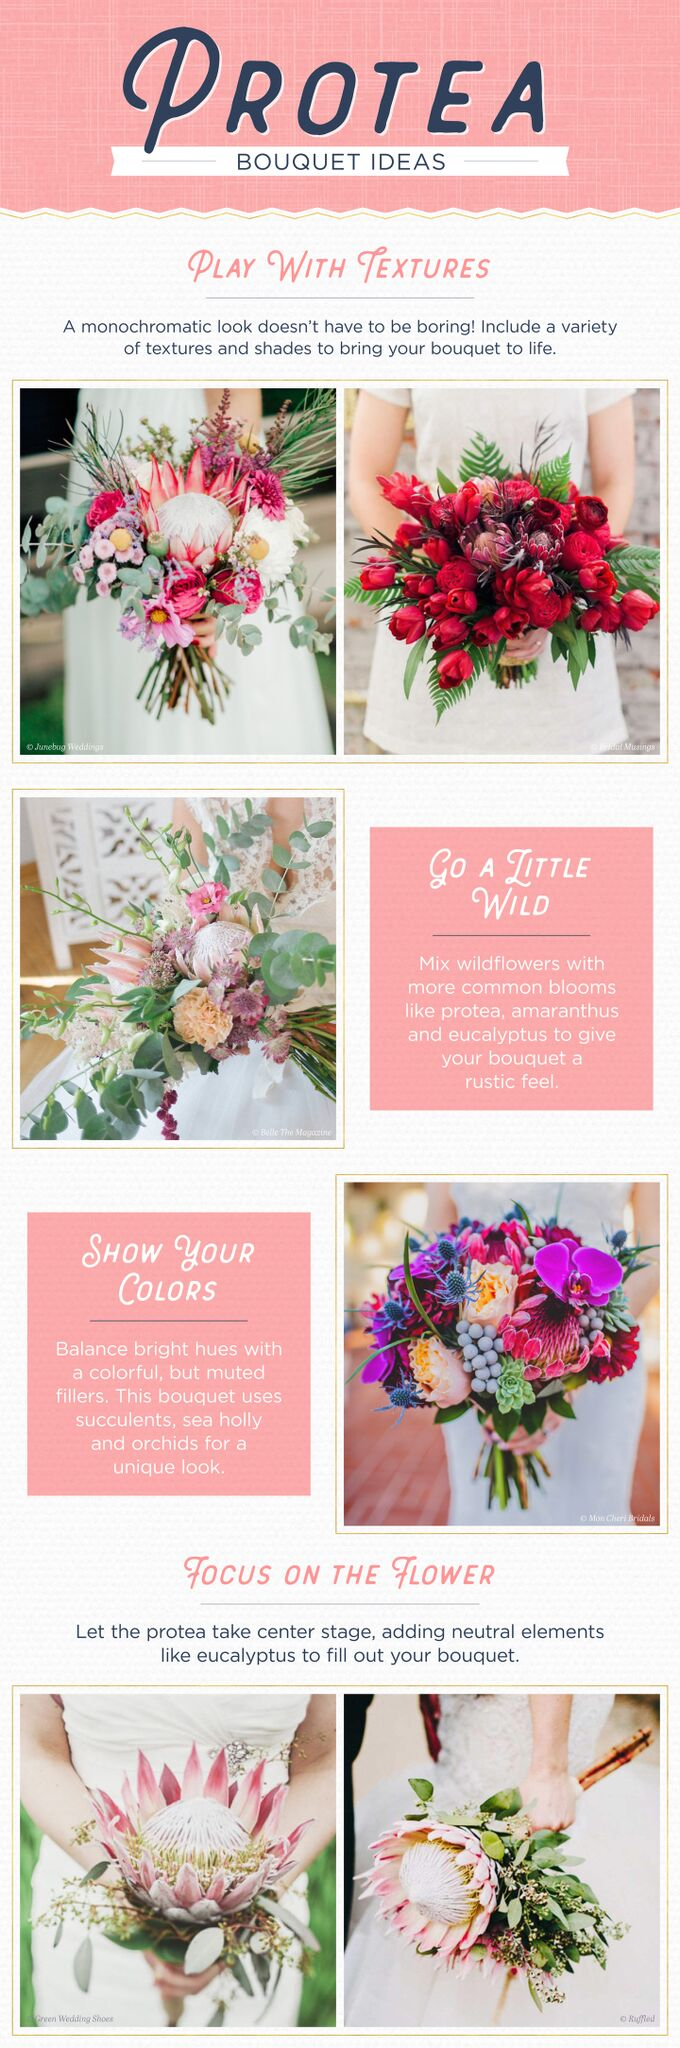 protea-bouquet-ideas_preview.jpeg